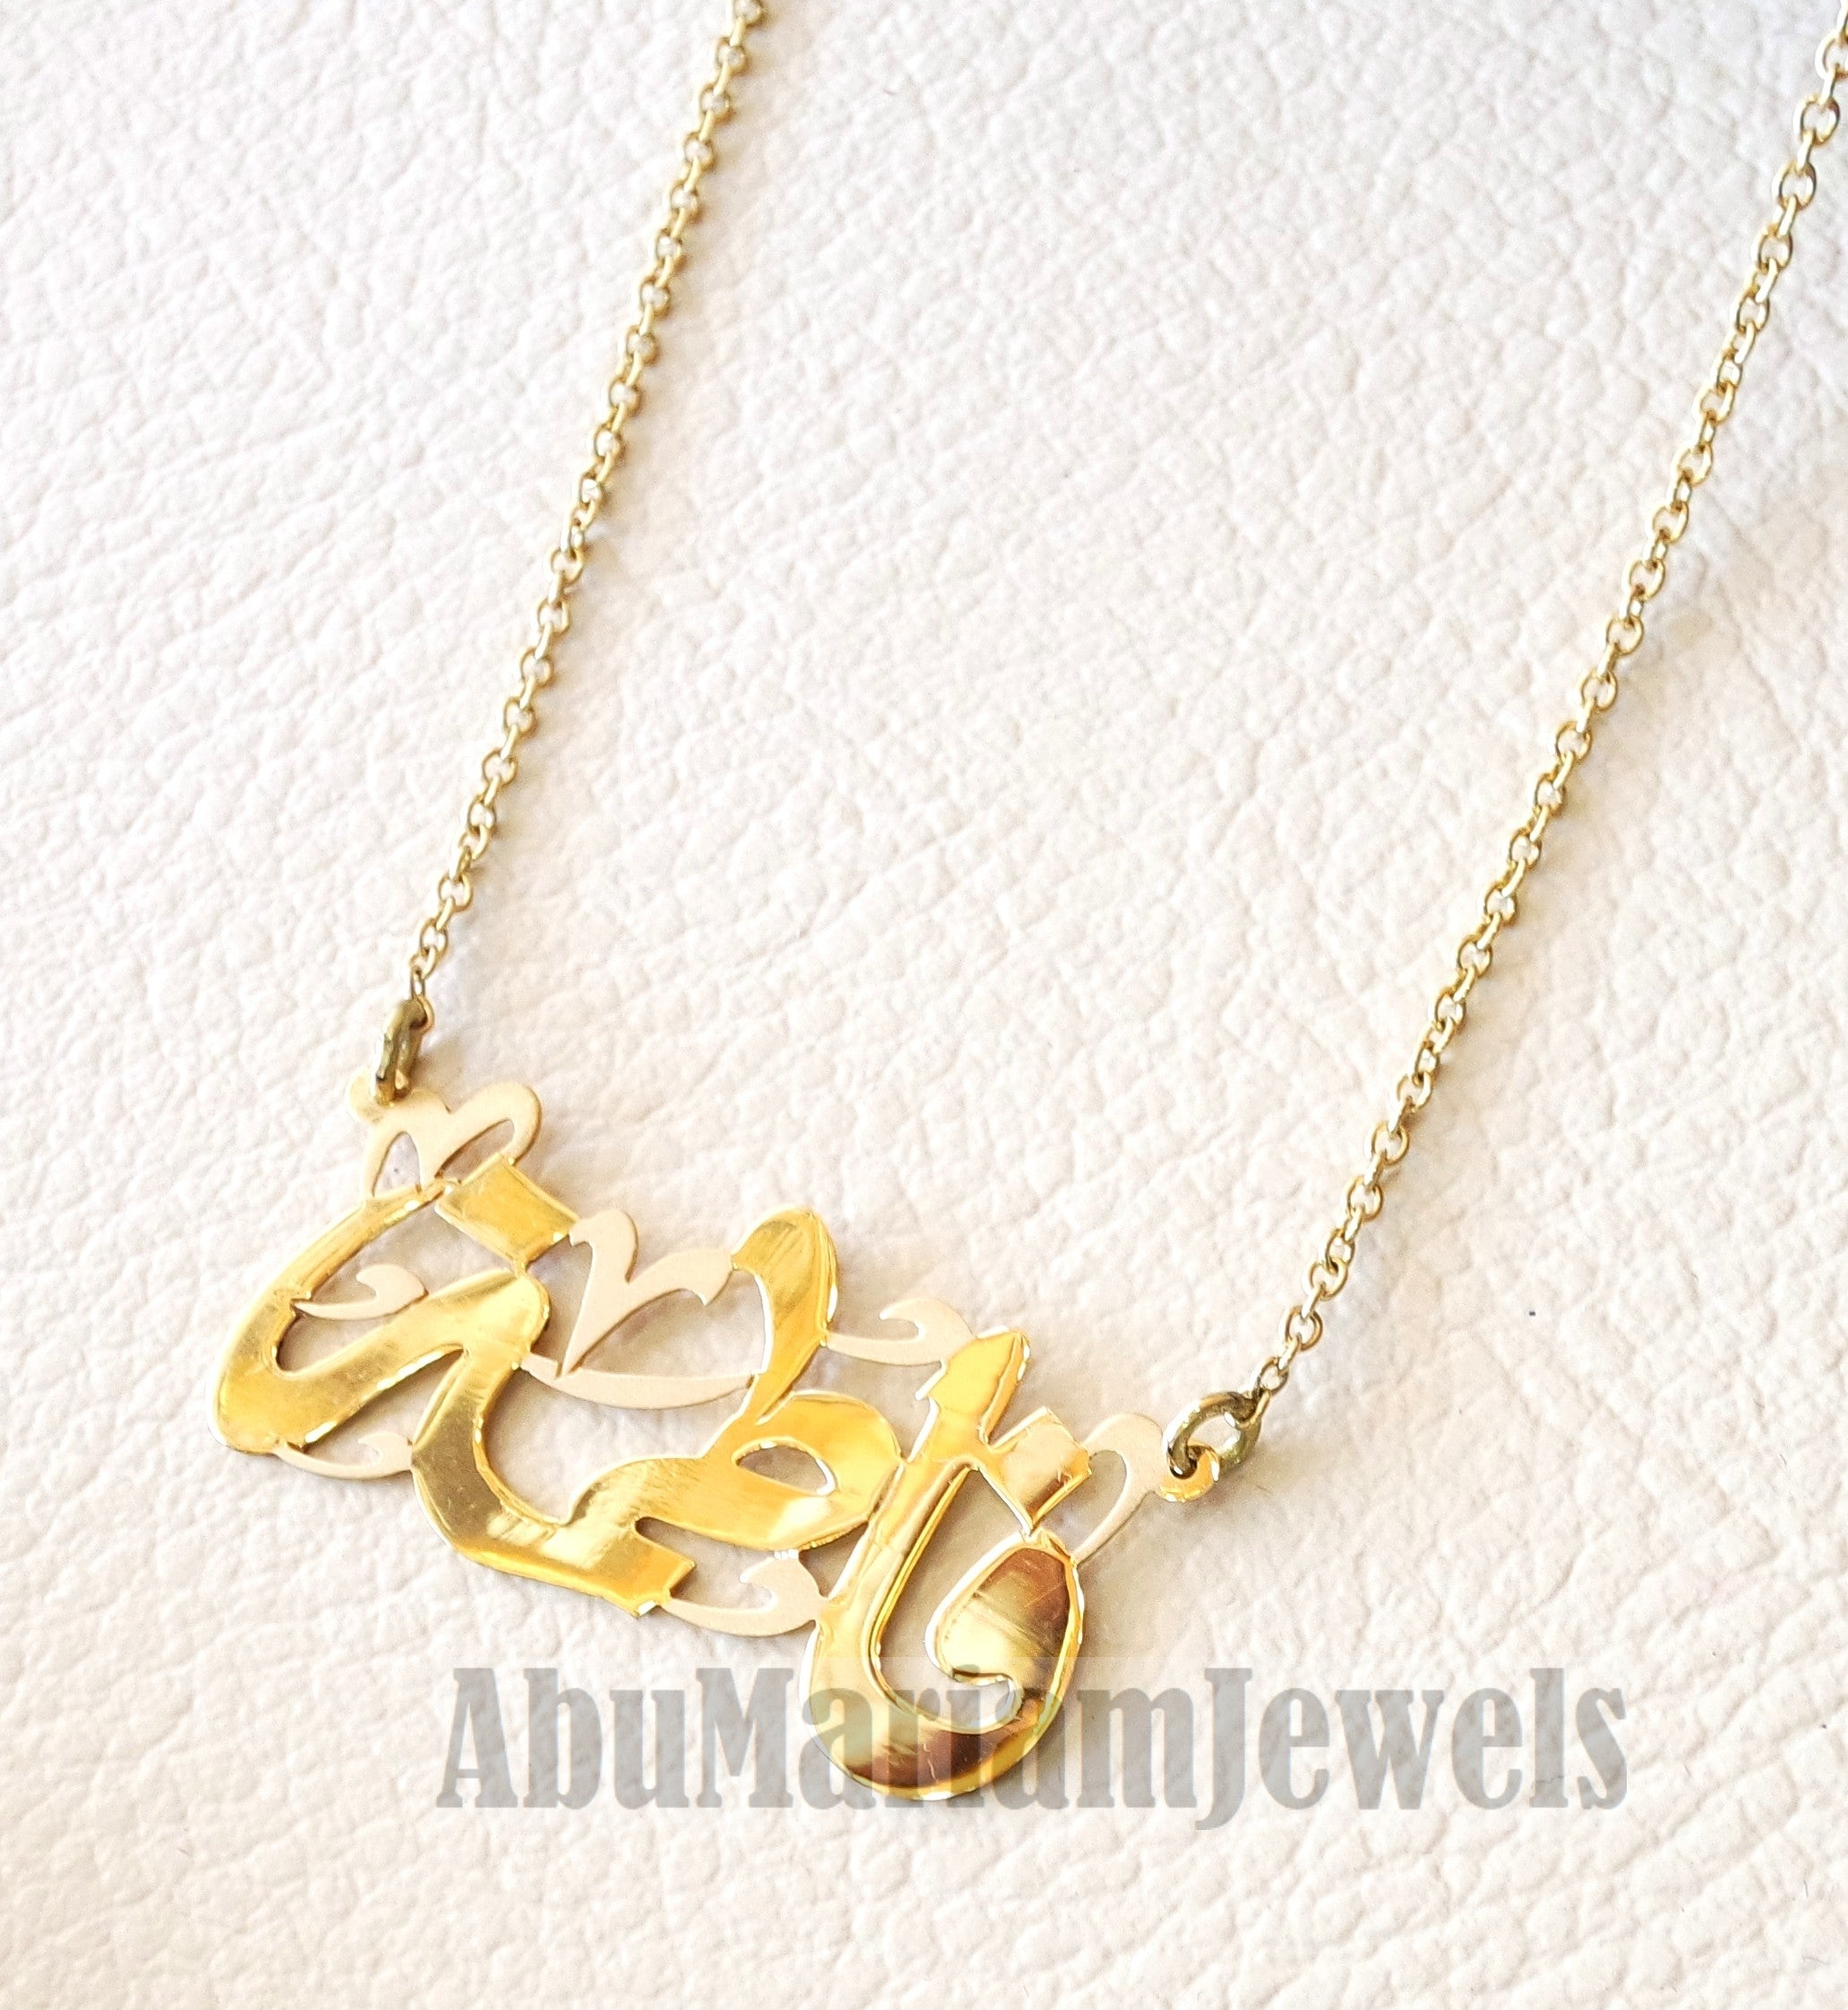 com gold necklace you charm reasons pendant personalized occqfpo heirloom get a why styleskier necklaces should modern